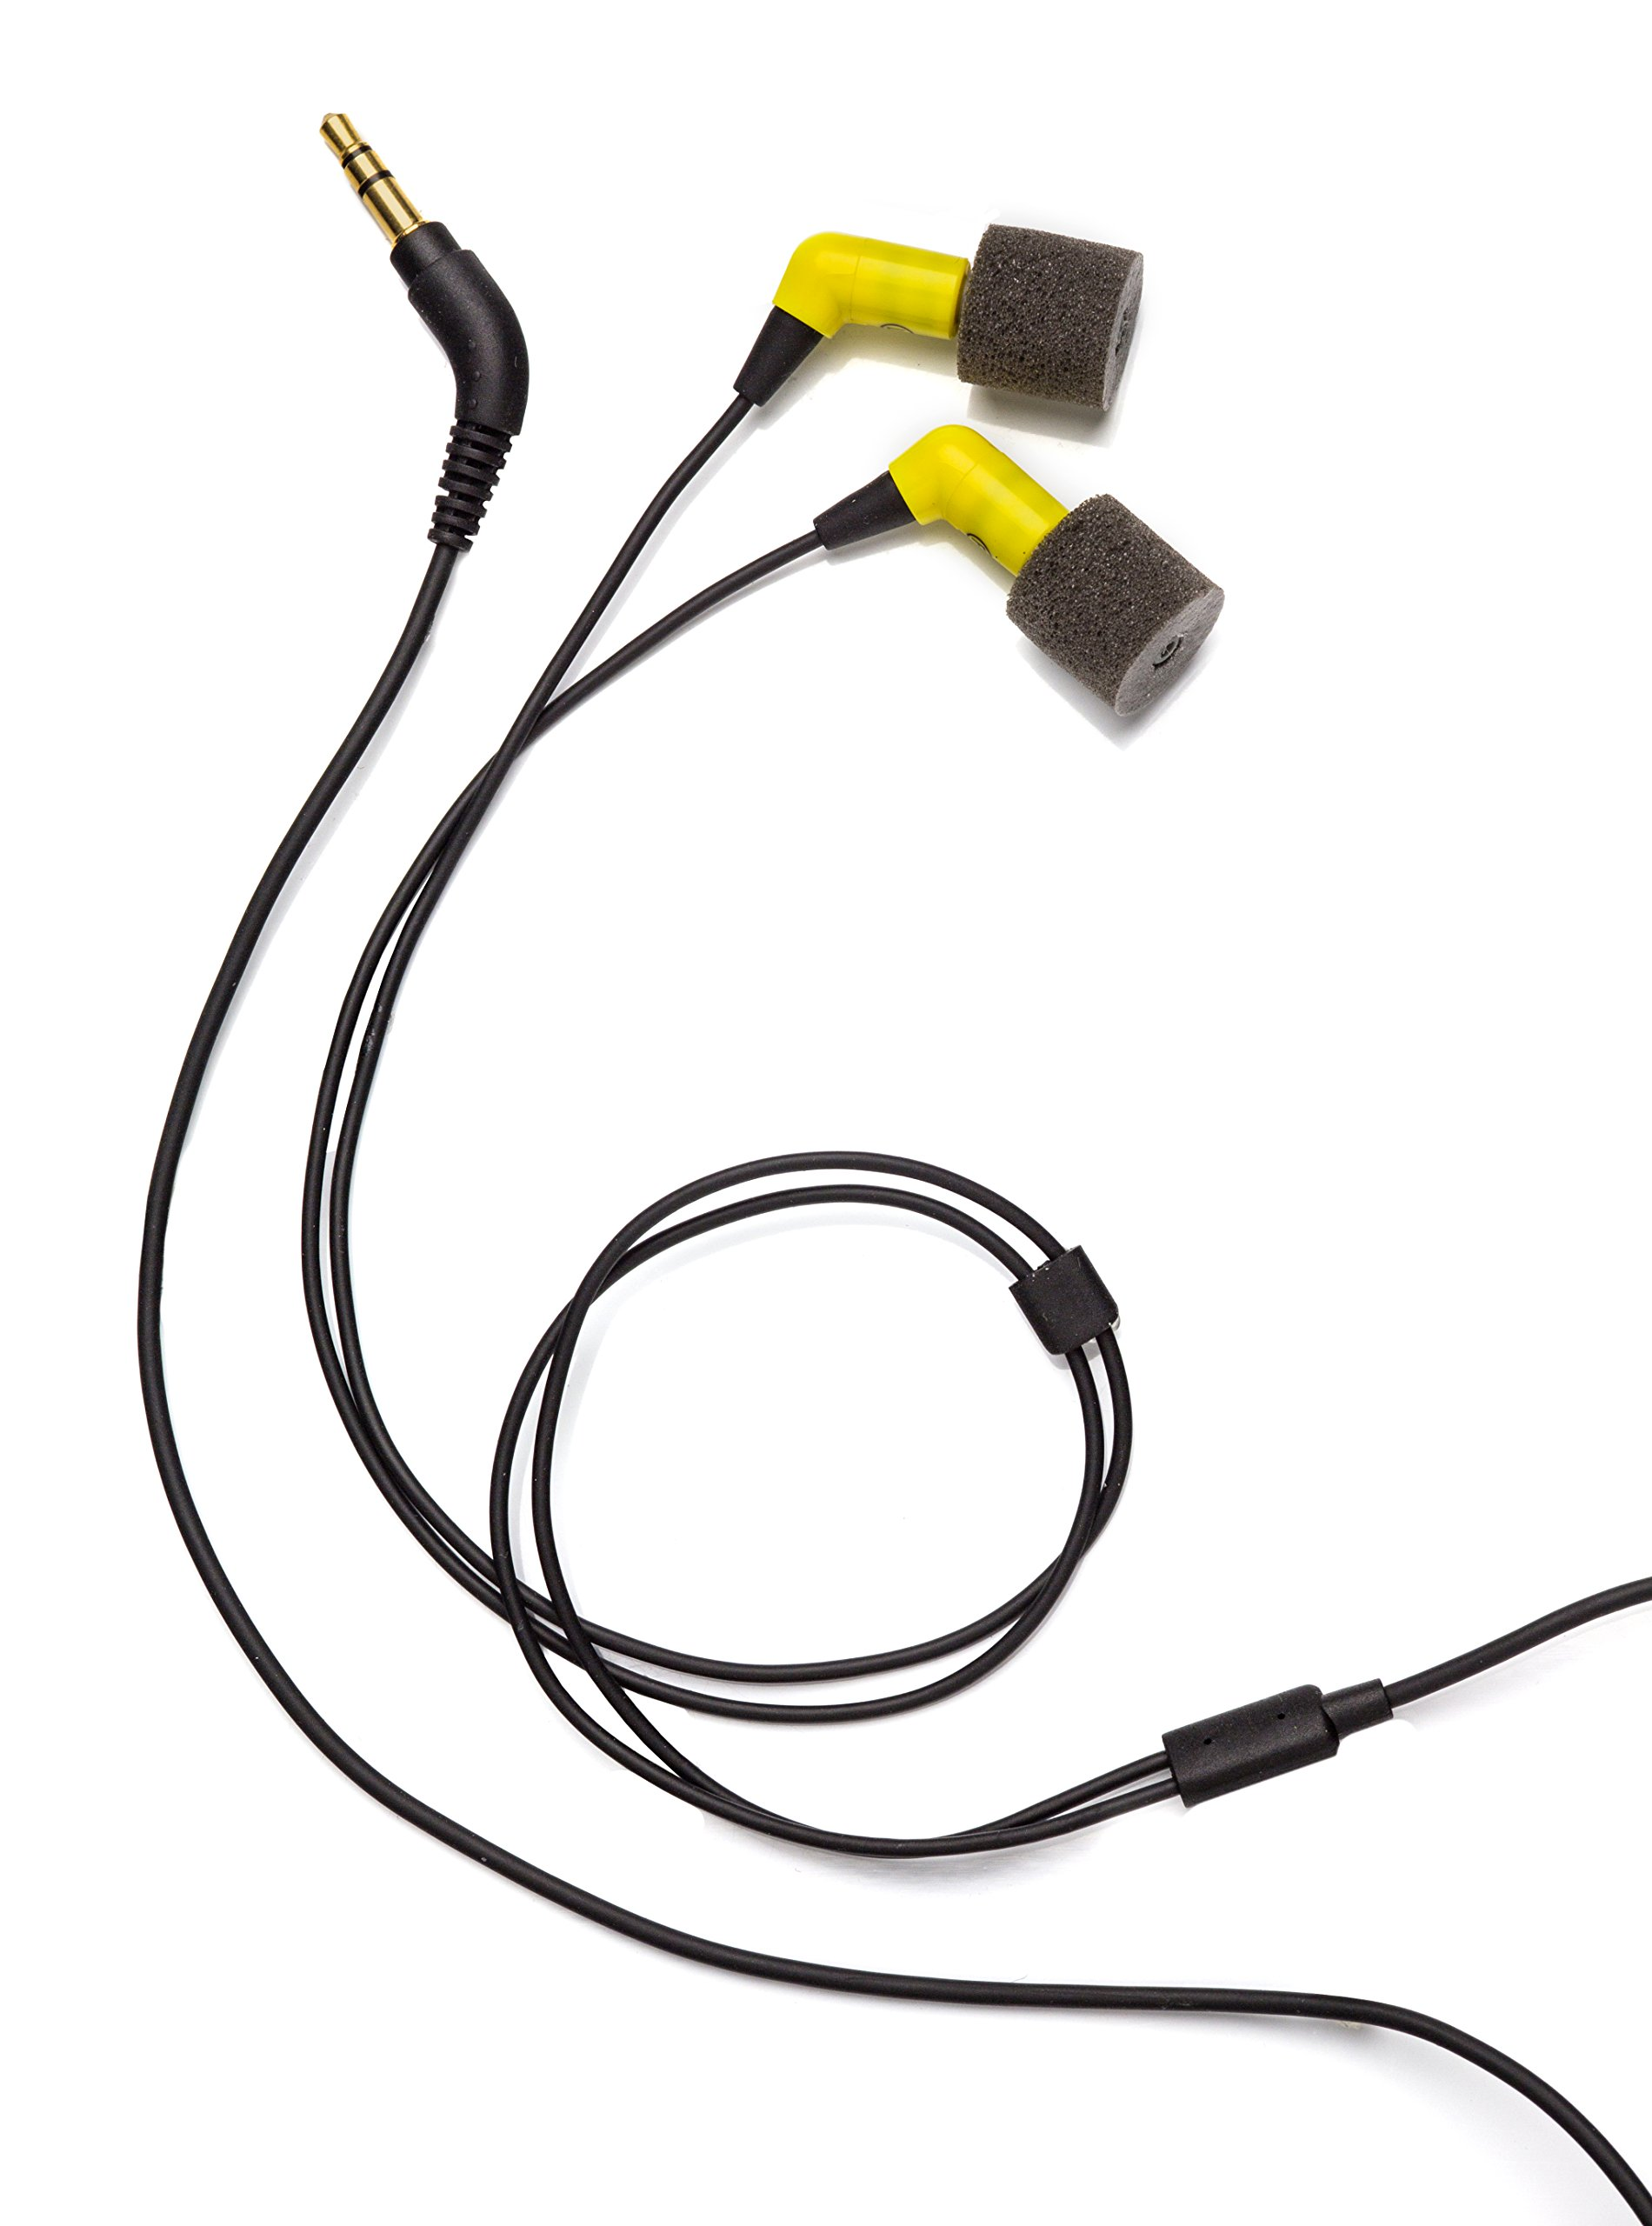 Etymotic HD5 Safety Headset and Earphones - Industrial Hearing Protection, Safe Listening Earphones, Yellow